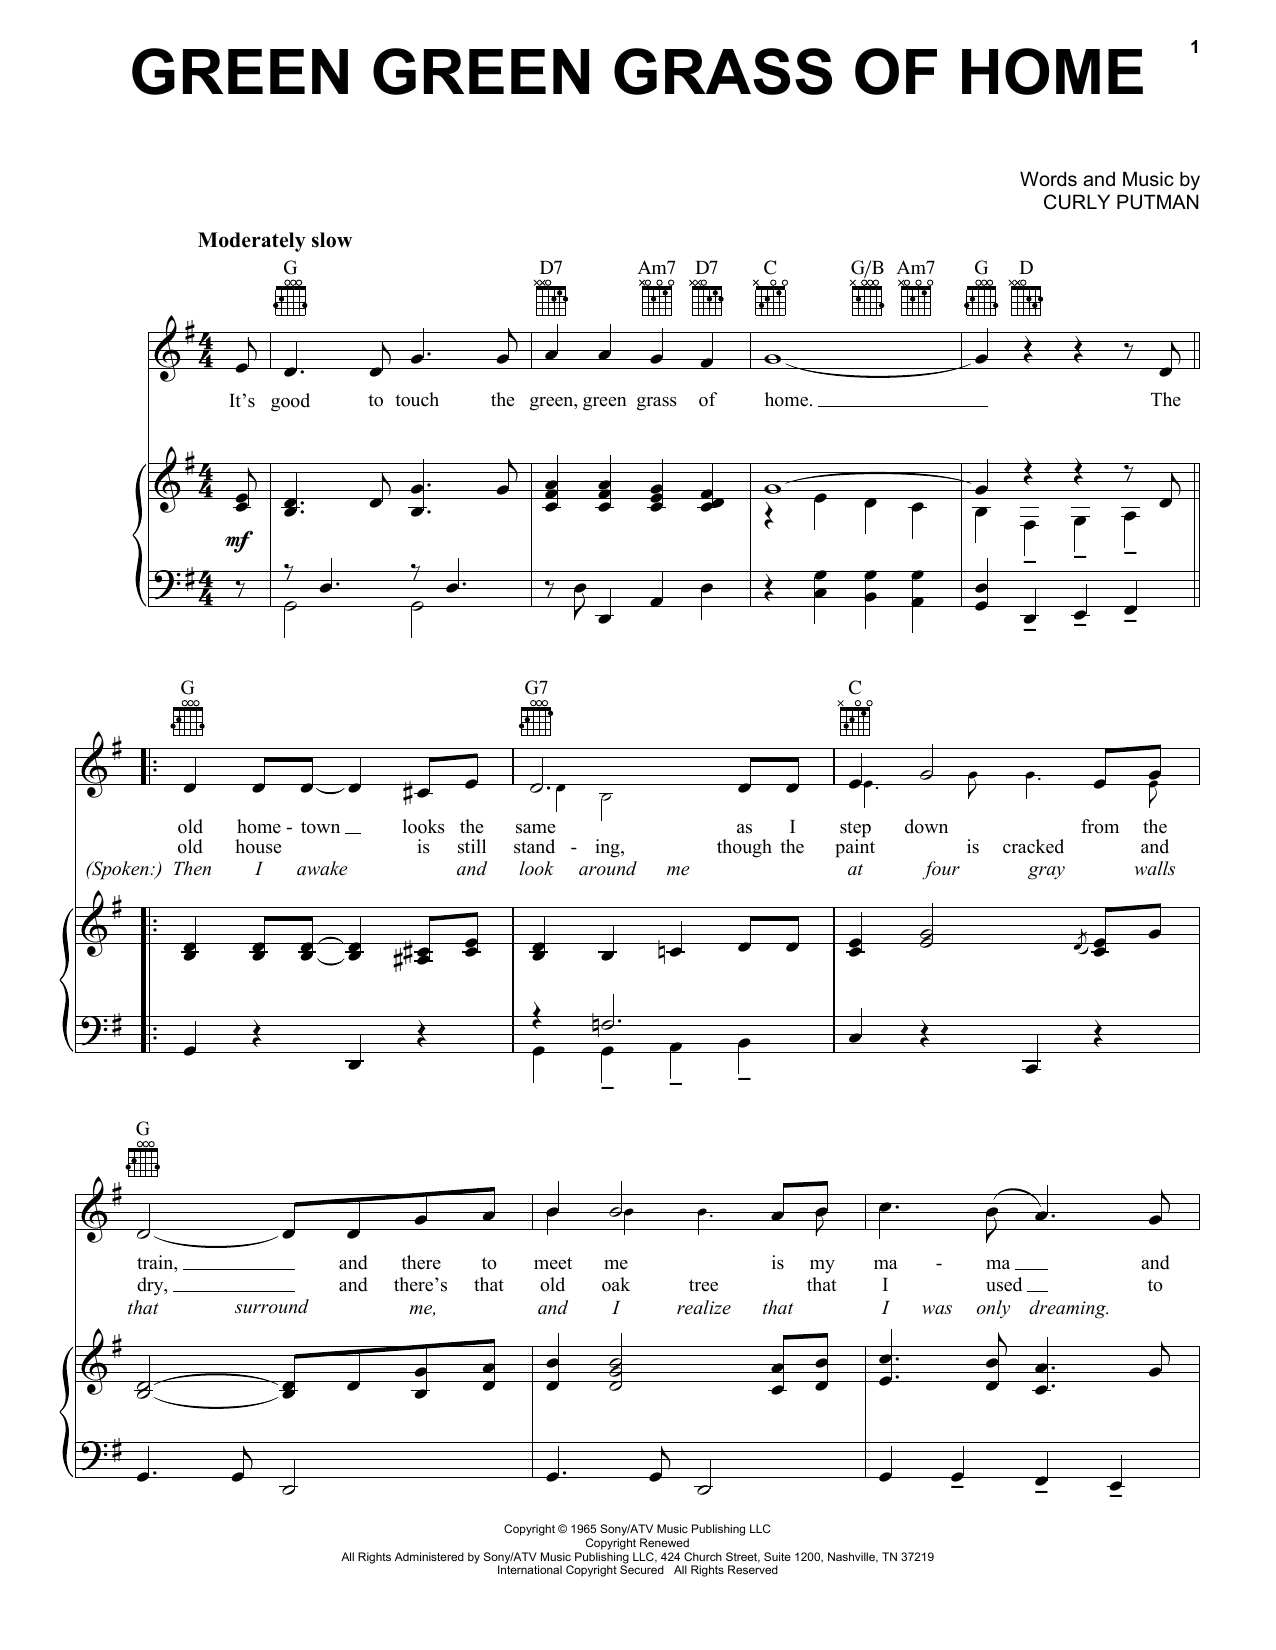 Porter Wagoner Green Green Grass Of Home sheet music notes and chords